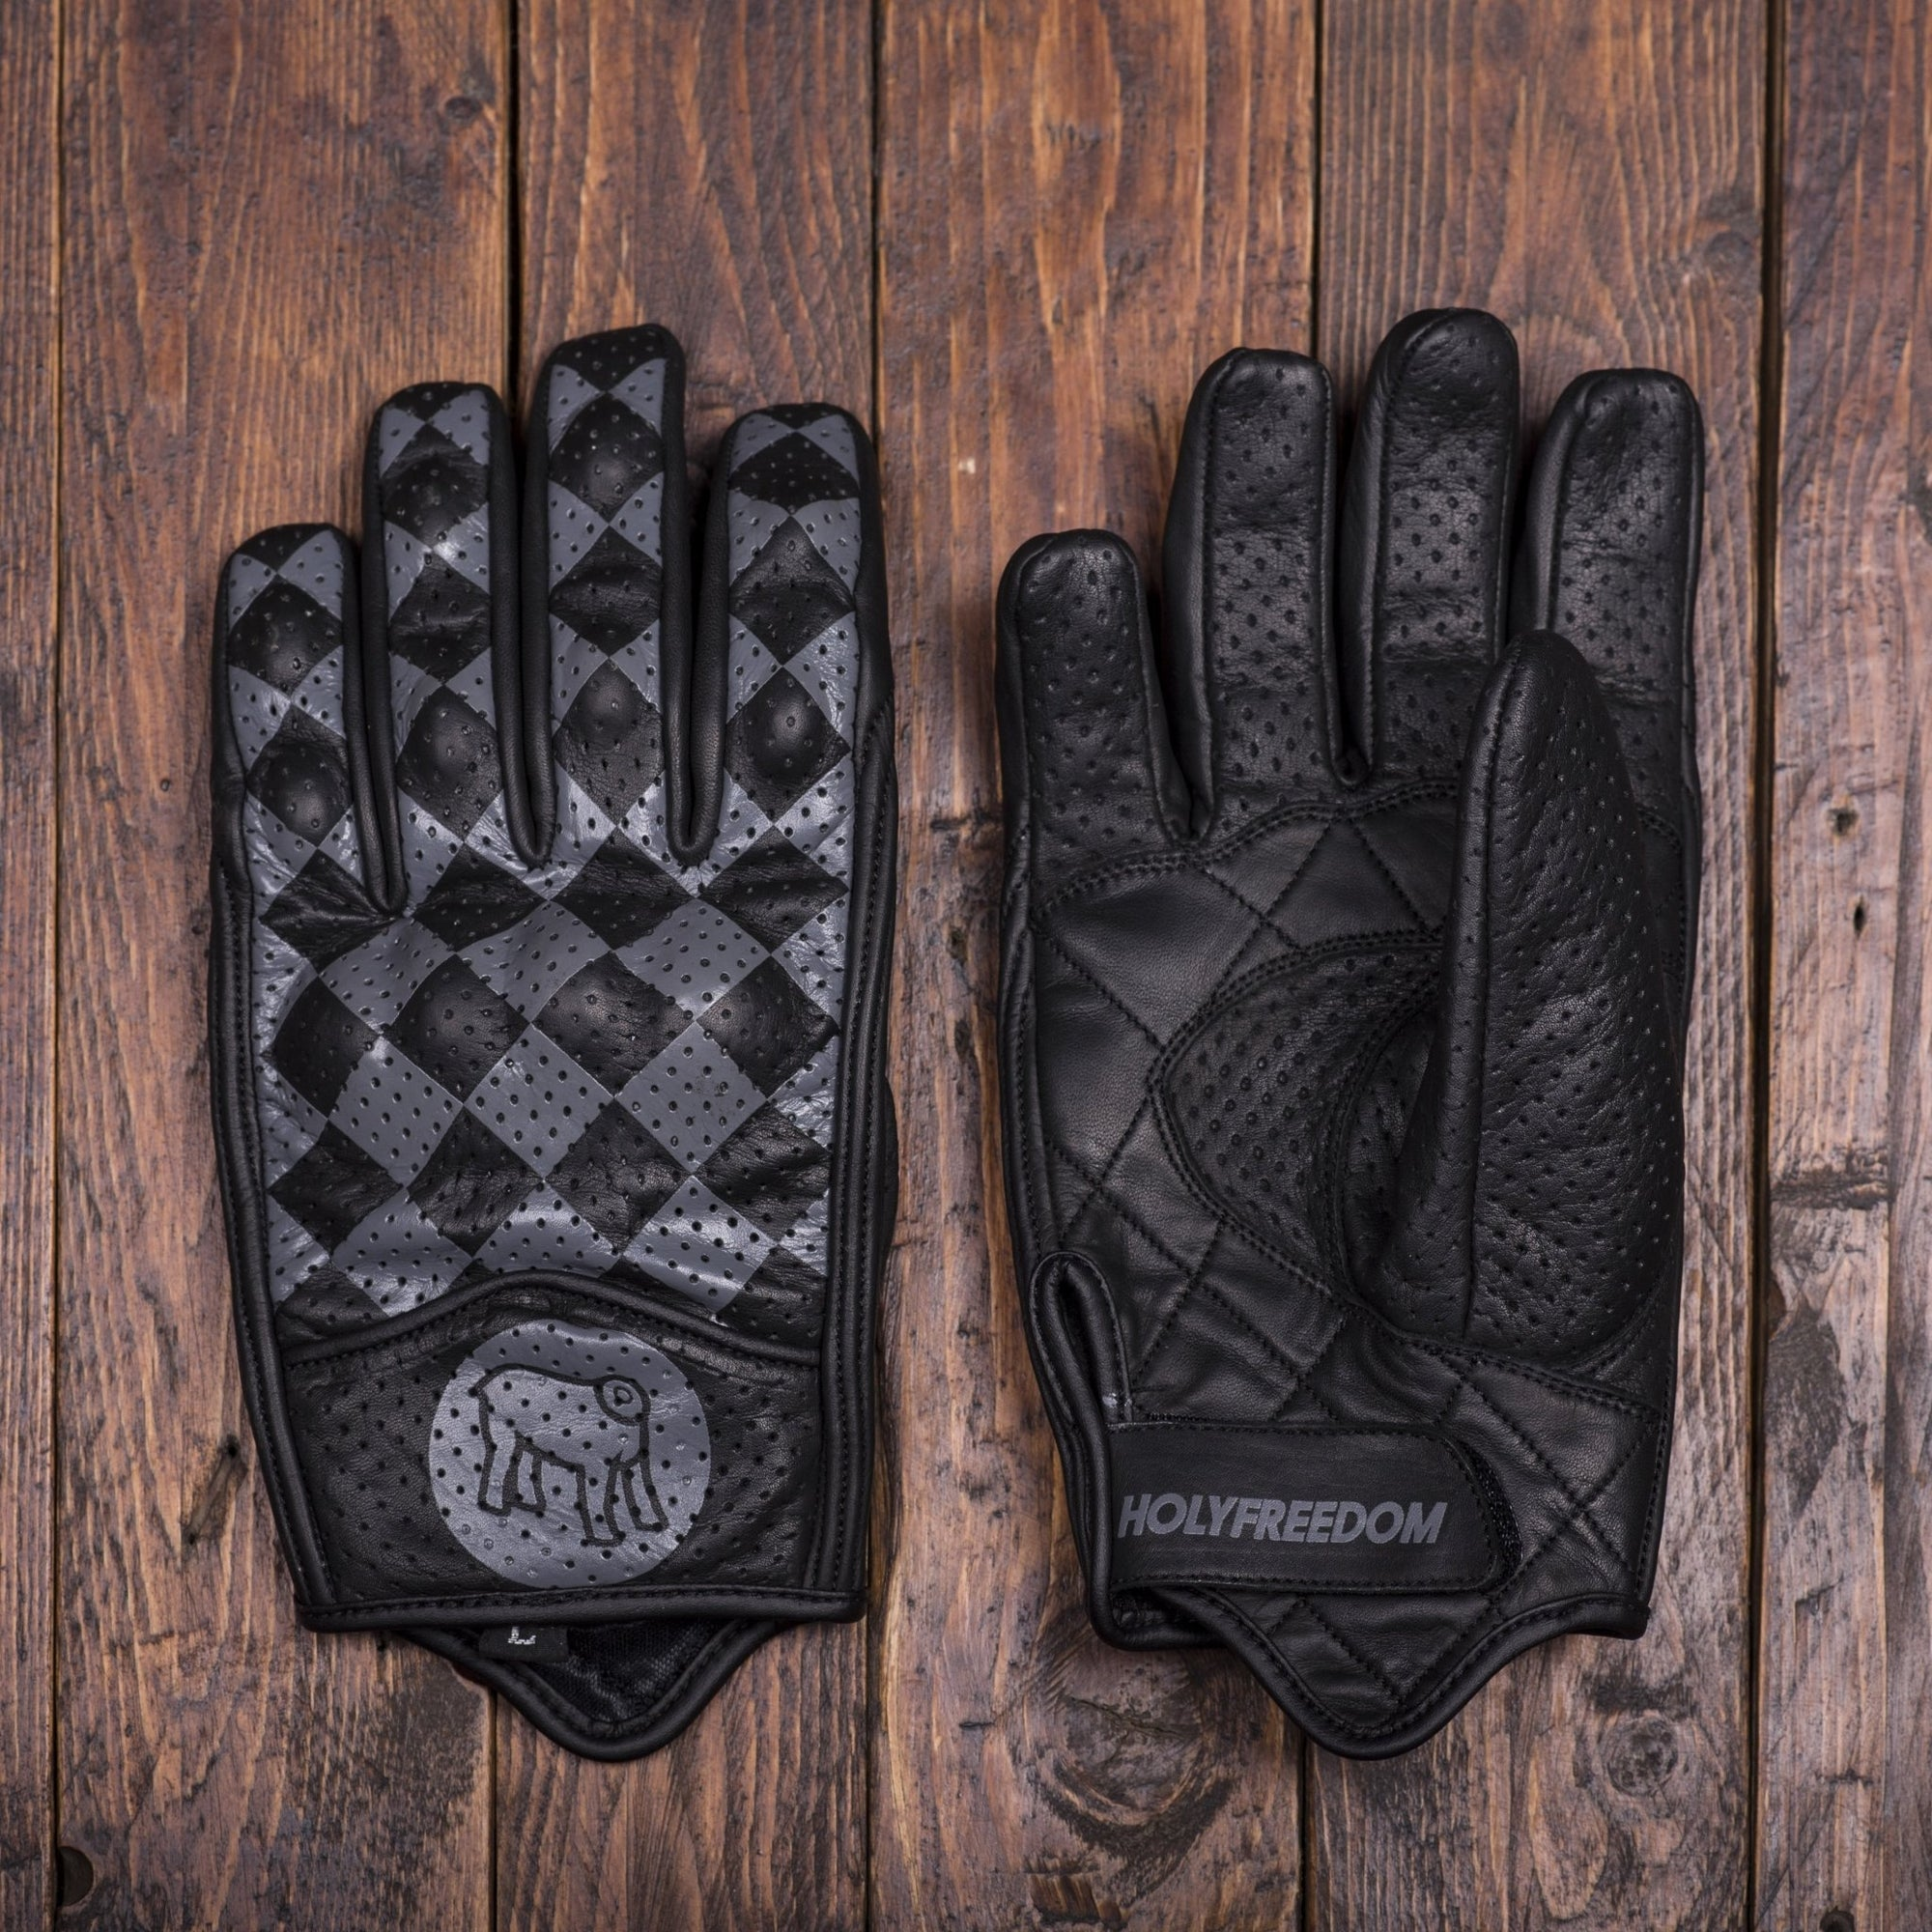 Holy Freedom - Holy Freedom Bullit Black and Anthracite Gloves - Gloves - Salt Flats Clothing